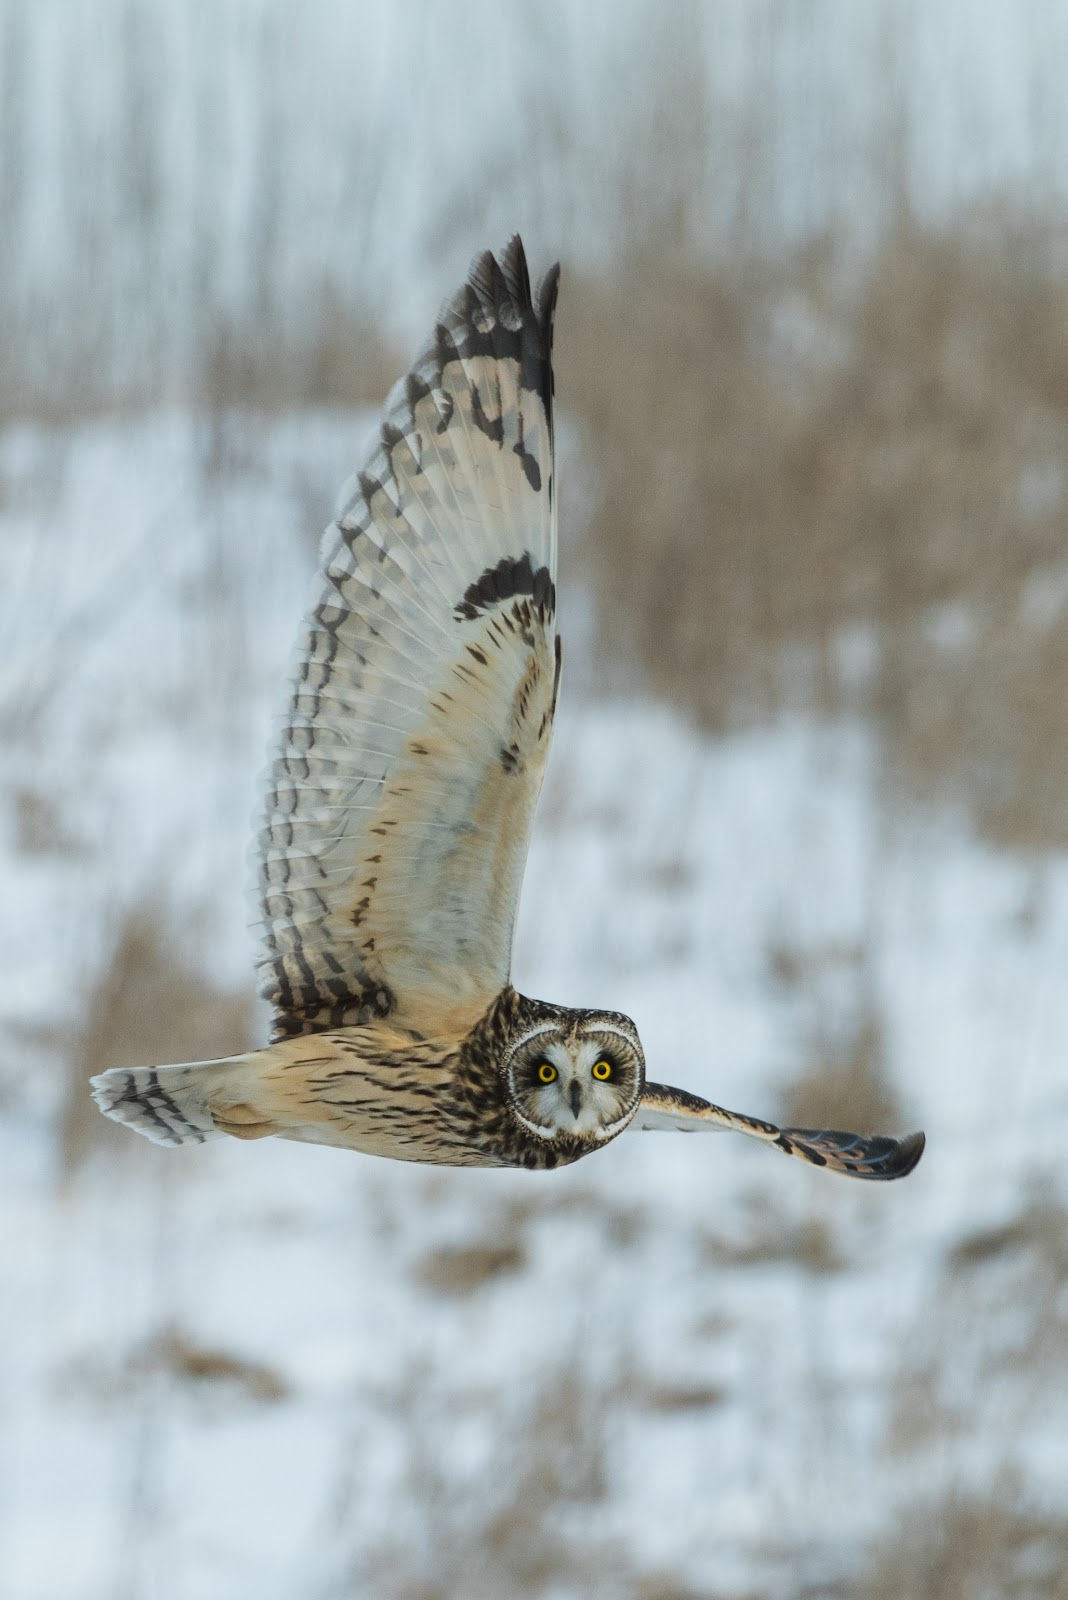 Owl in flight with snowy background